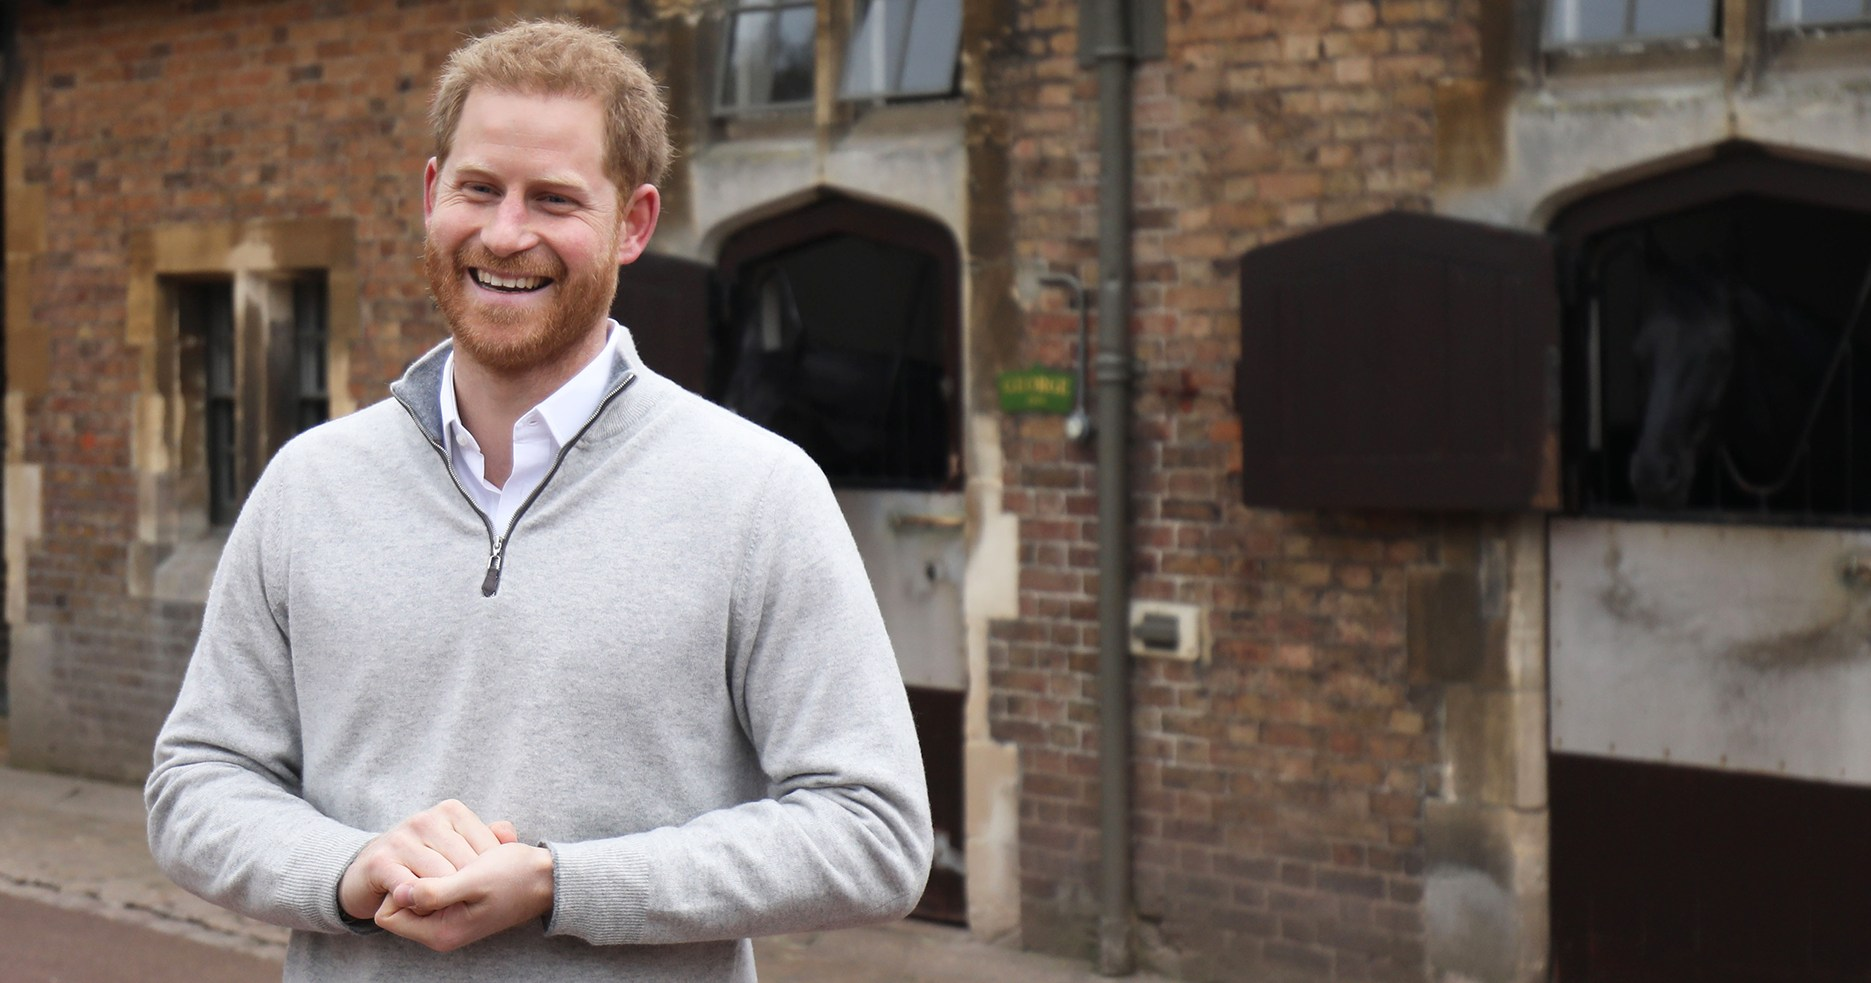 Prince Harry Can't Contain His Happiness Over Royal Baby Boy's Birth